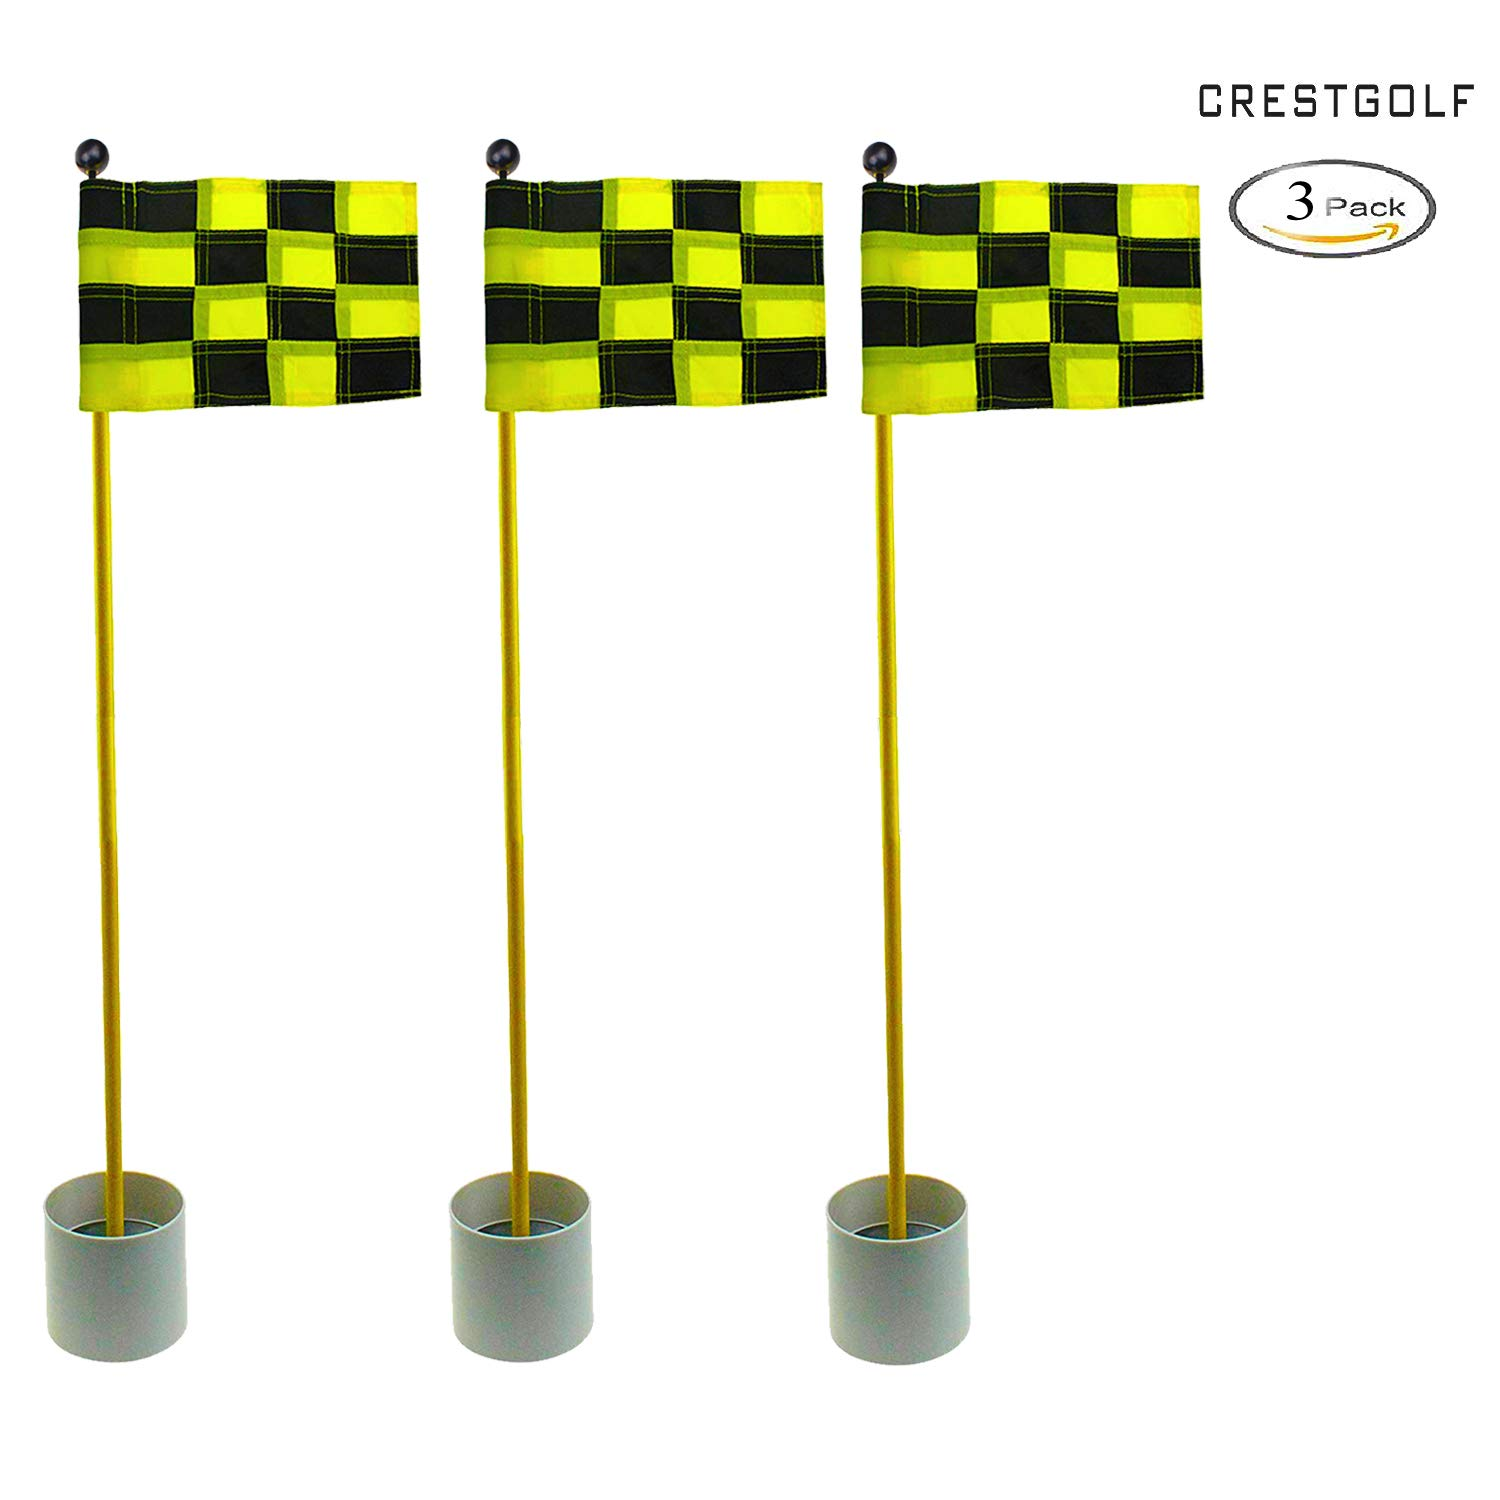 CRESTGOLF 3Sets Backyard Practice Golf Hole Pole Cup Flag Stick, 3 Section,Golf Putting Green Flagstick (black-yellow plaid)